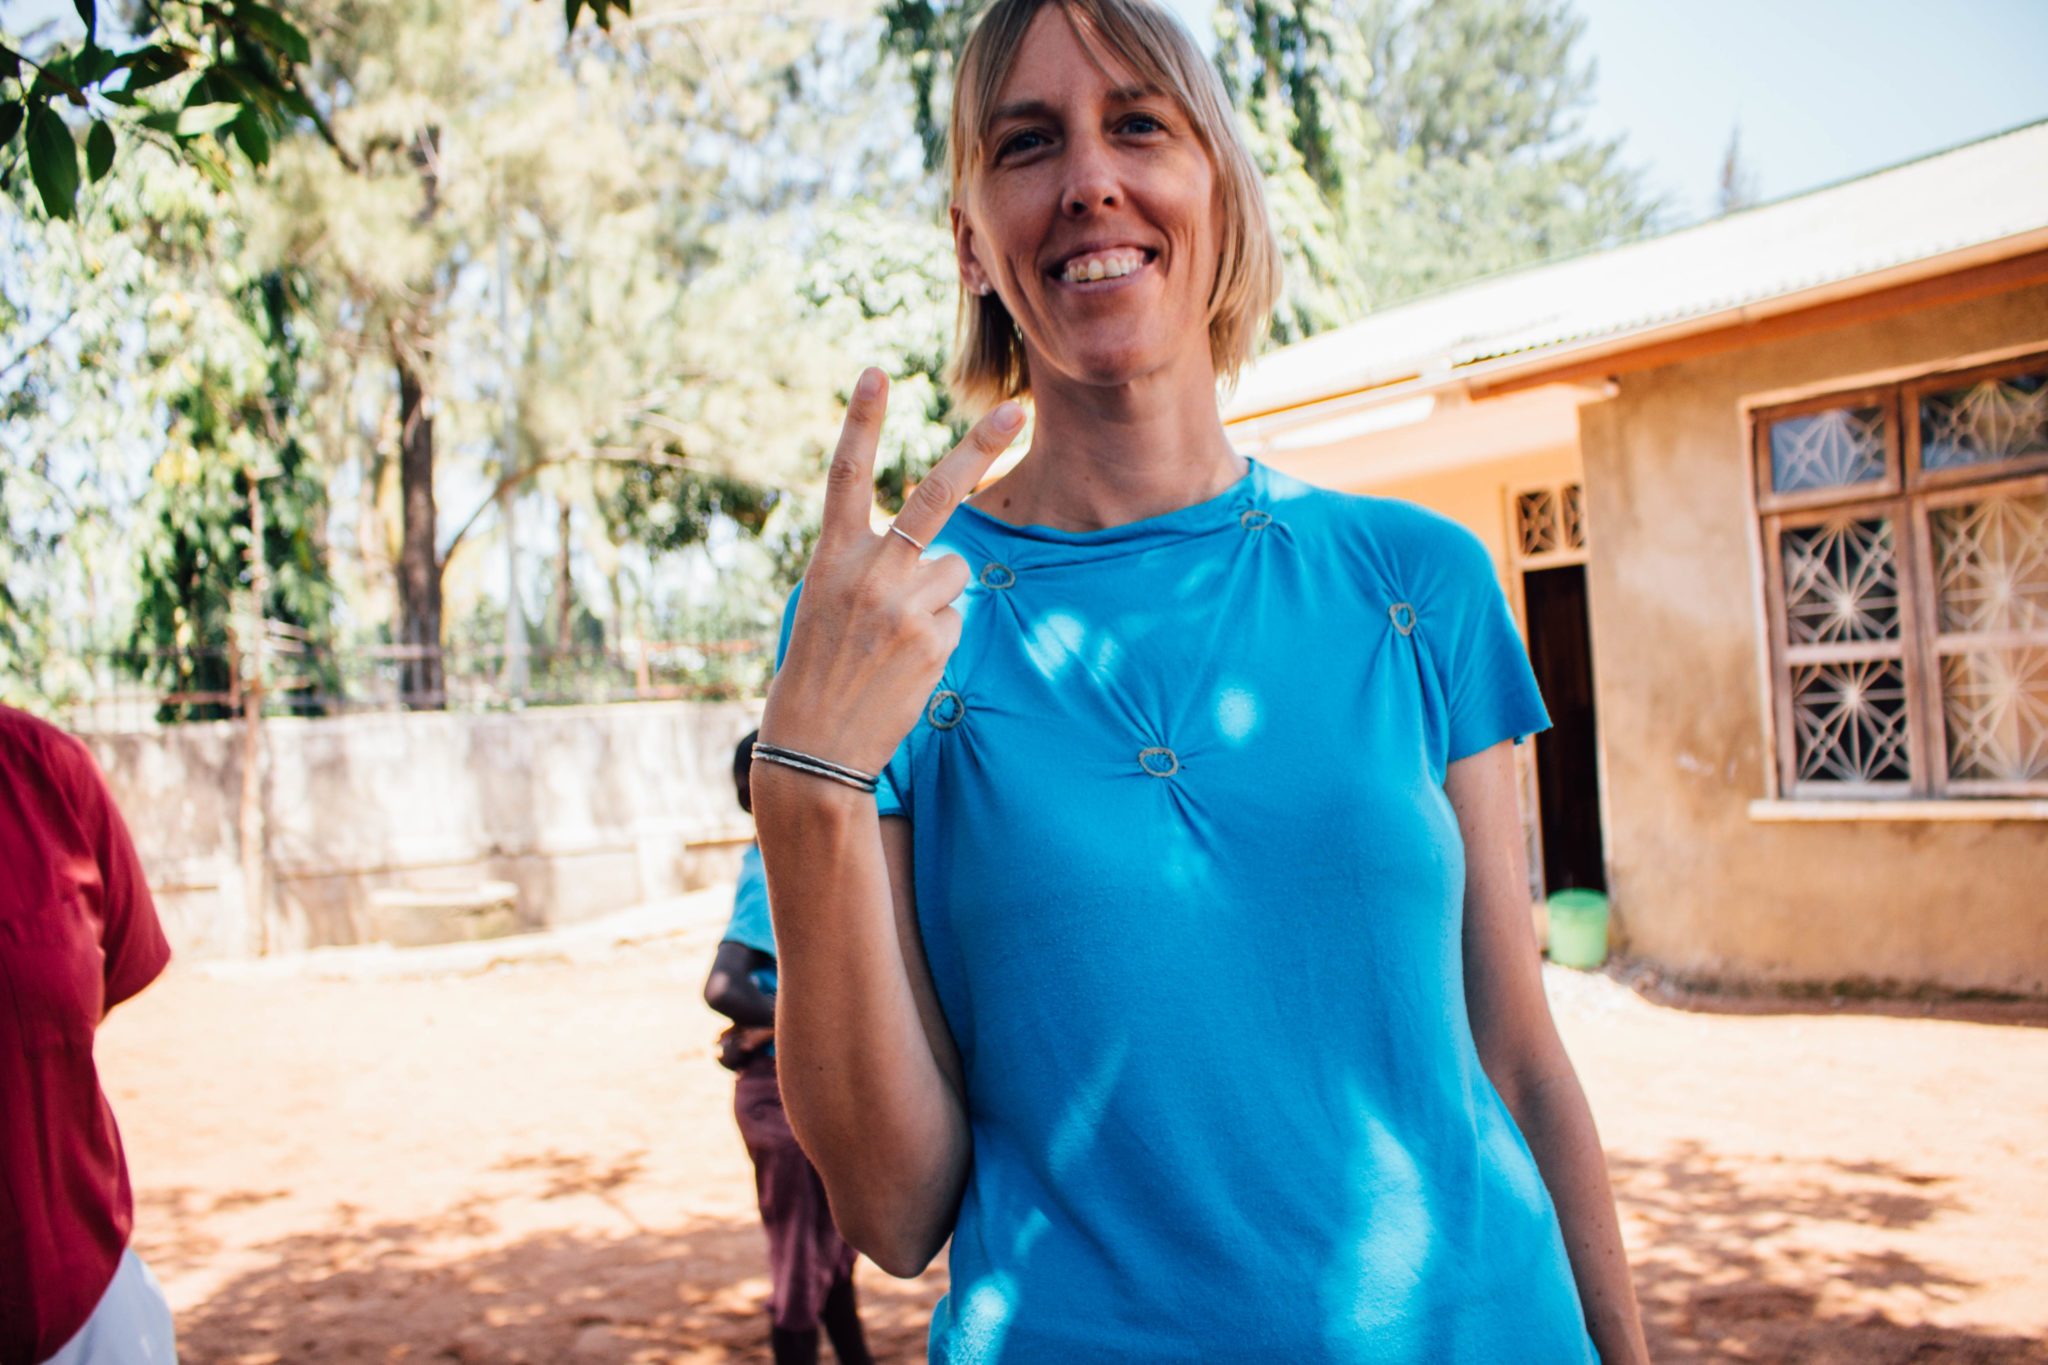 Associate professor Dr. Natalie Bourdon uses her fingers to make a peace sign in Tanzania.